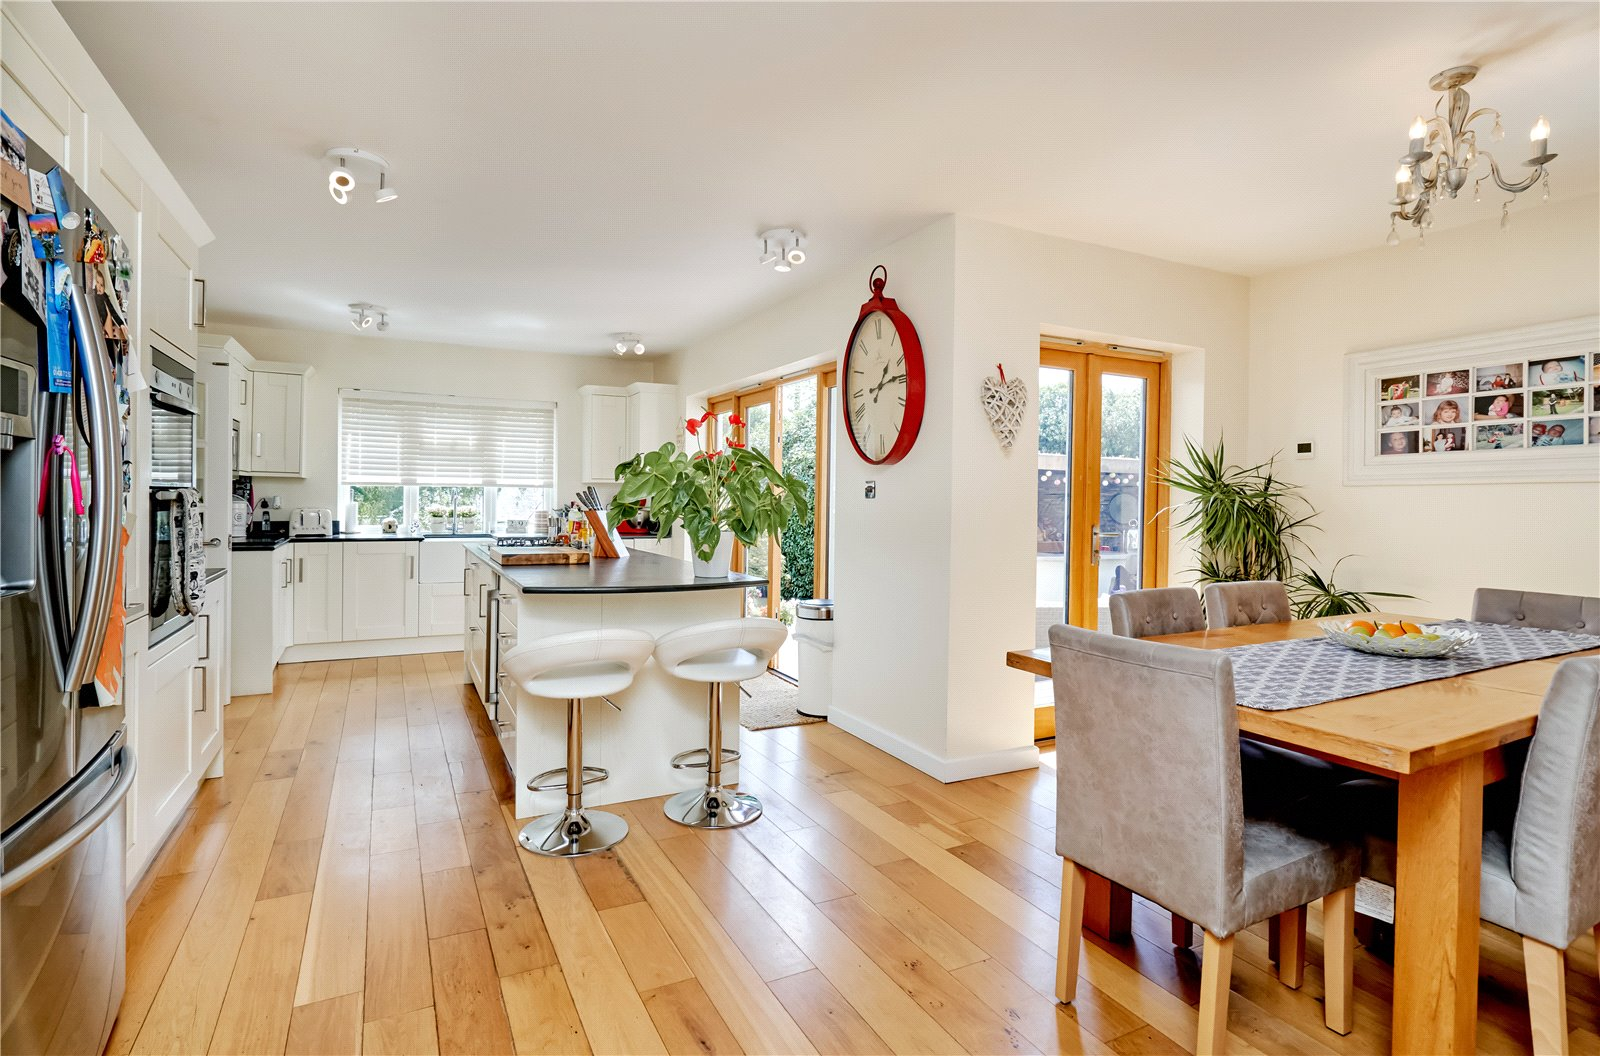 4 bed house for sale in Heathbrow Road, Old Welwyn  - Property Image 4